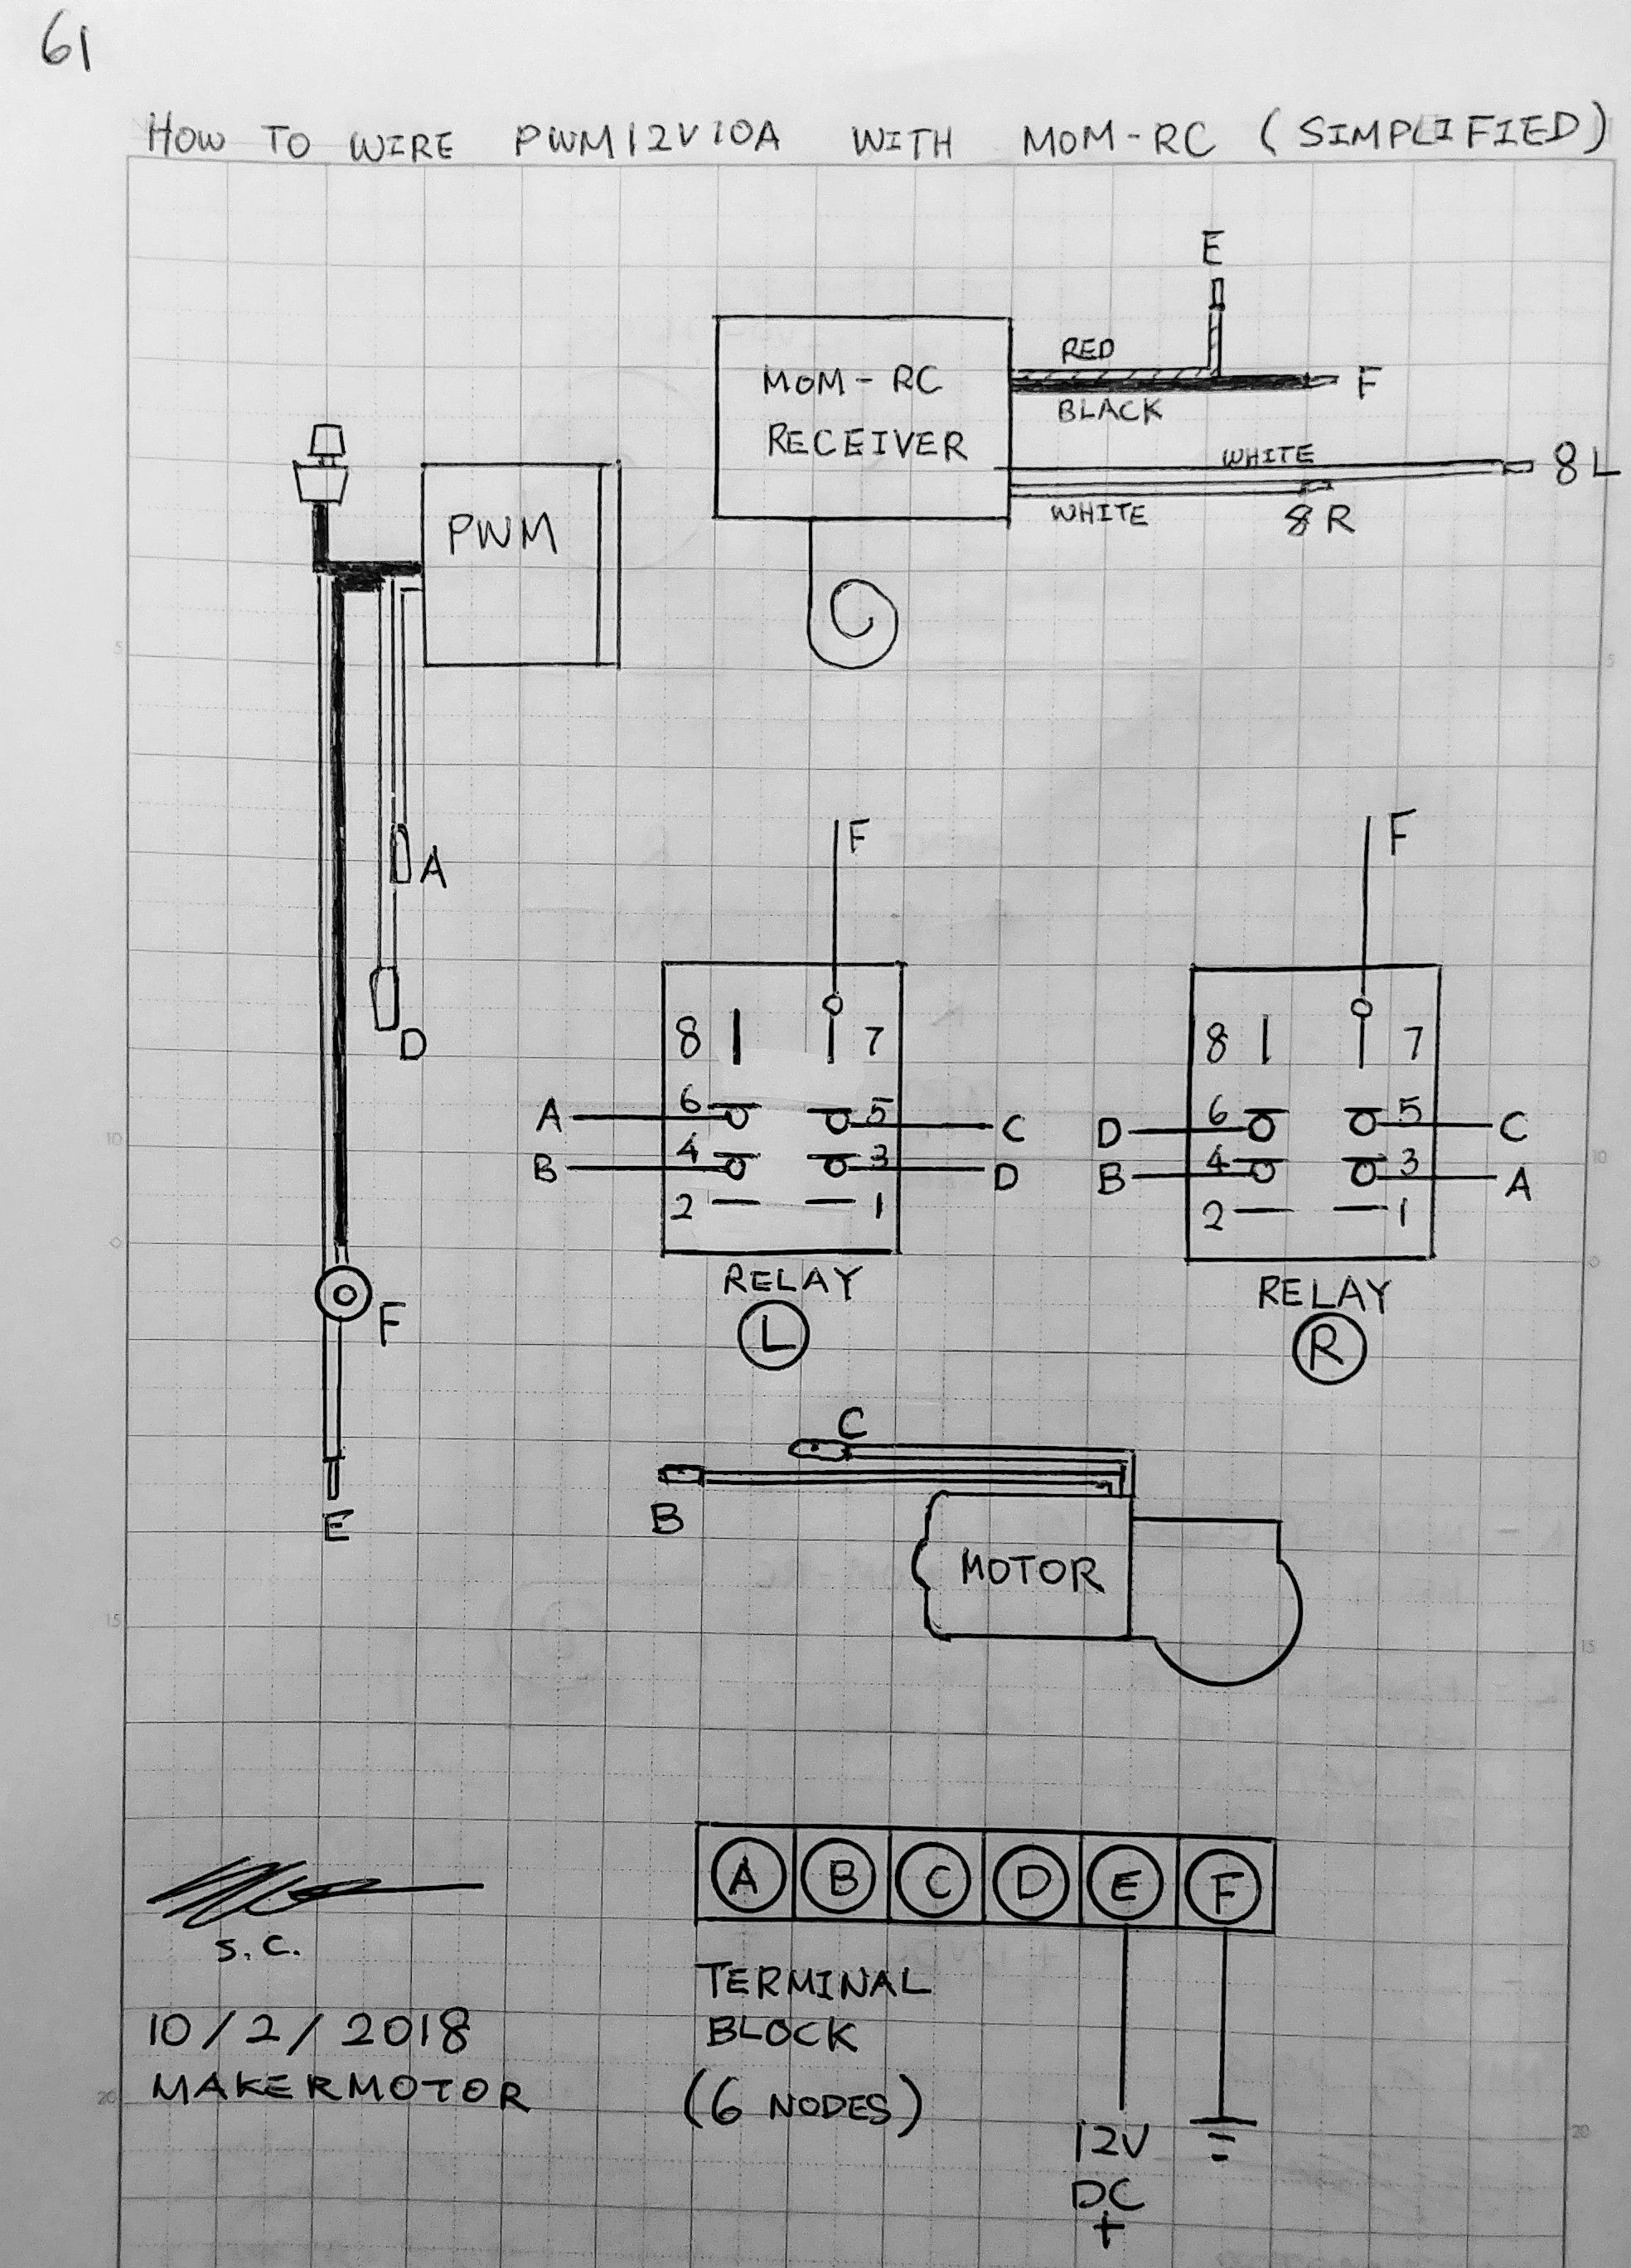 Schematic Of Rc Electric Motor Circuit Revision On Pwm12v10a with Mom Rc Makermotor Of Schematic Of Rc Electric Motor Circuit